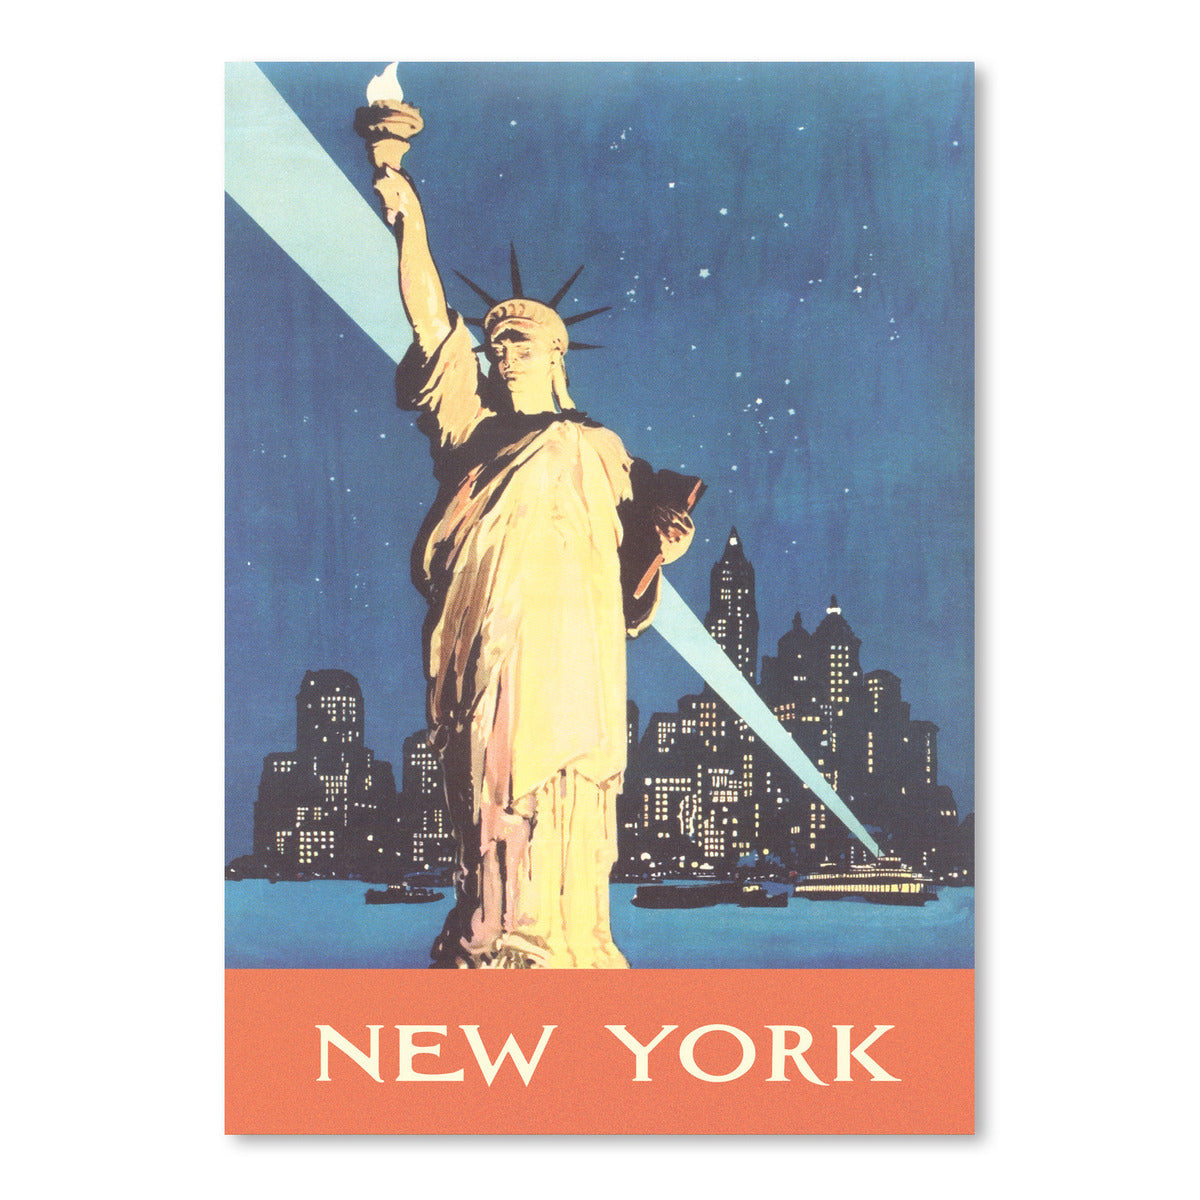 New York Travel Poster by Found Image Press Art Print - Art Print - Americanflat